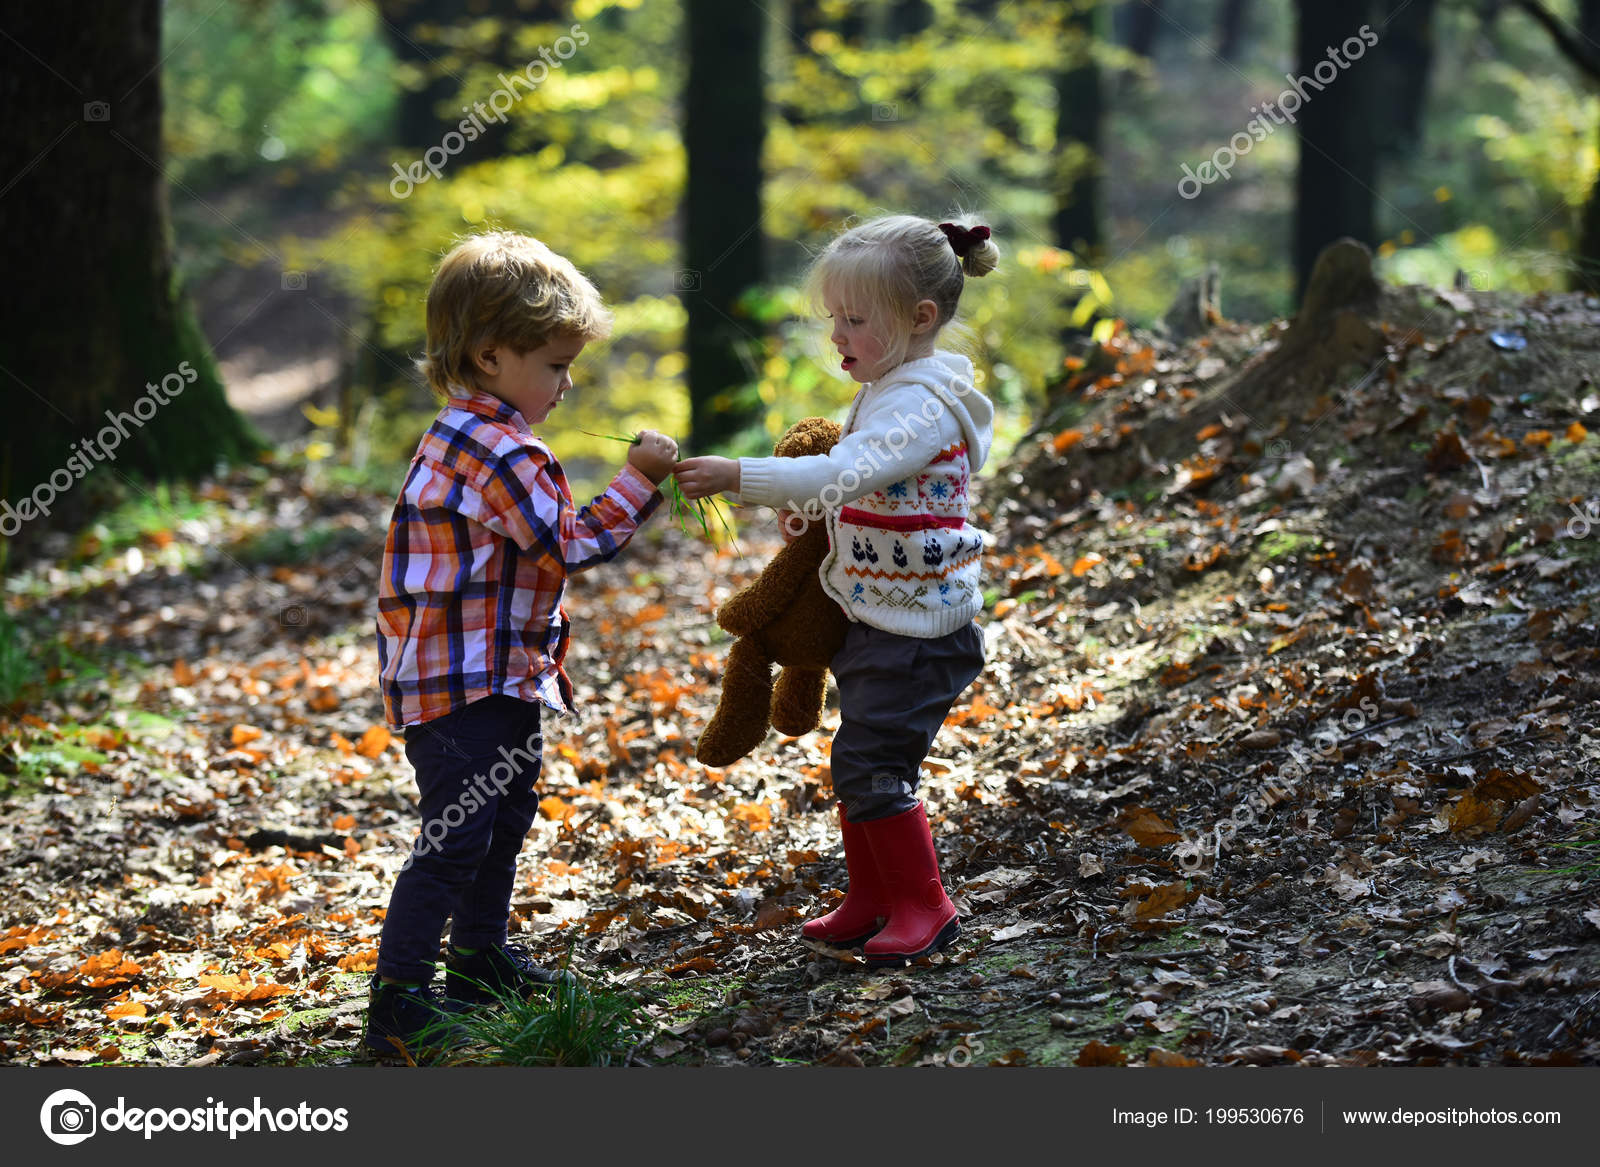 Kids Harvest Grass In Autumn Forest Brother And Sister Play On